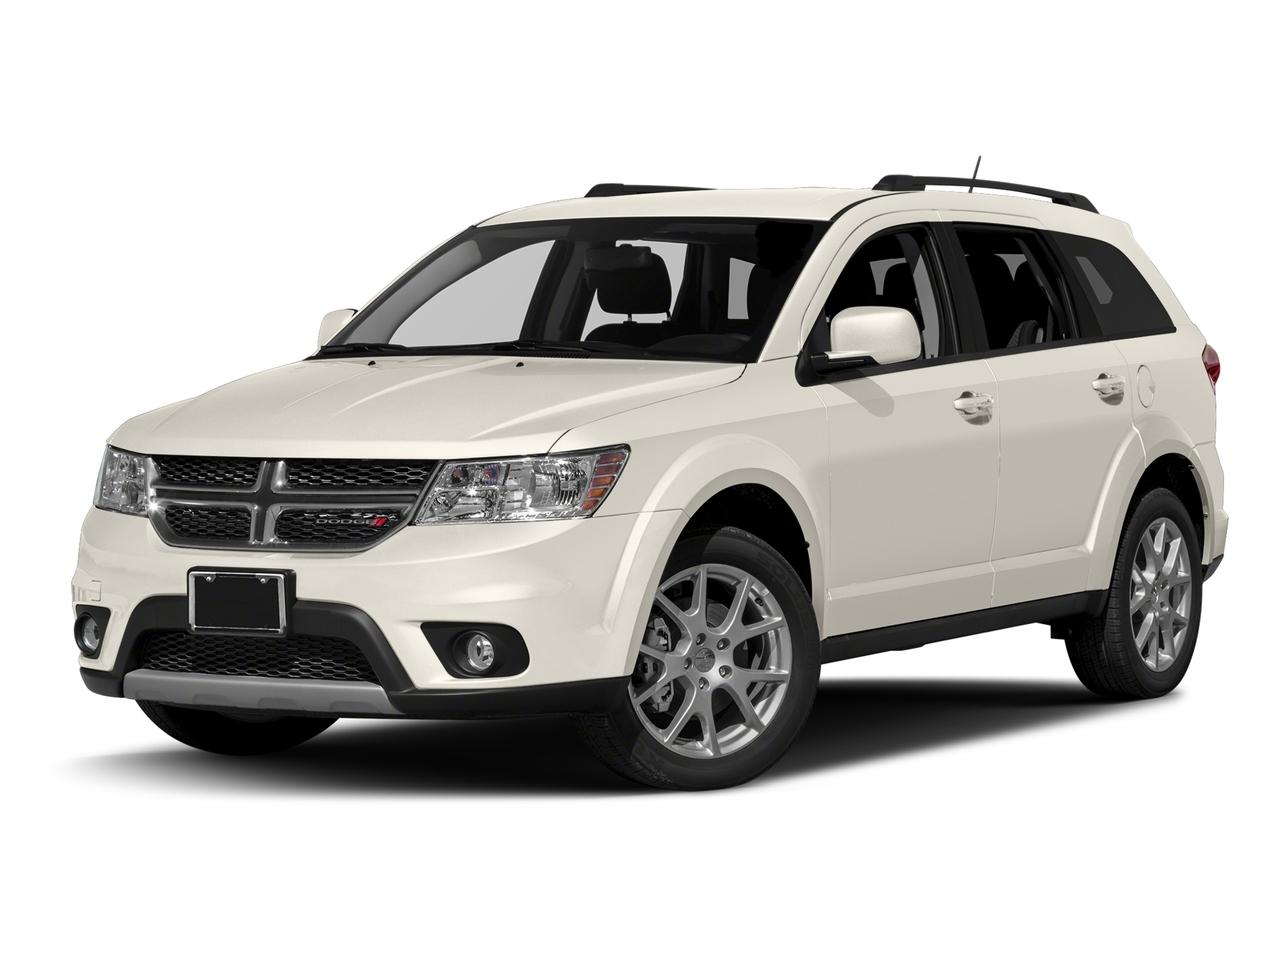 2016 Dodge Journey Vehicle Photo in Fort Worth, TX 76116